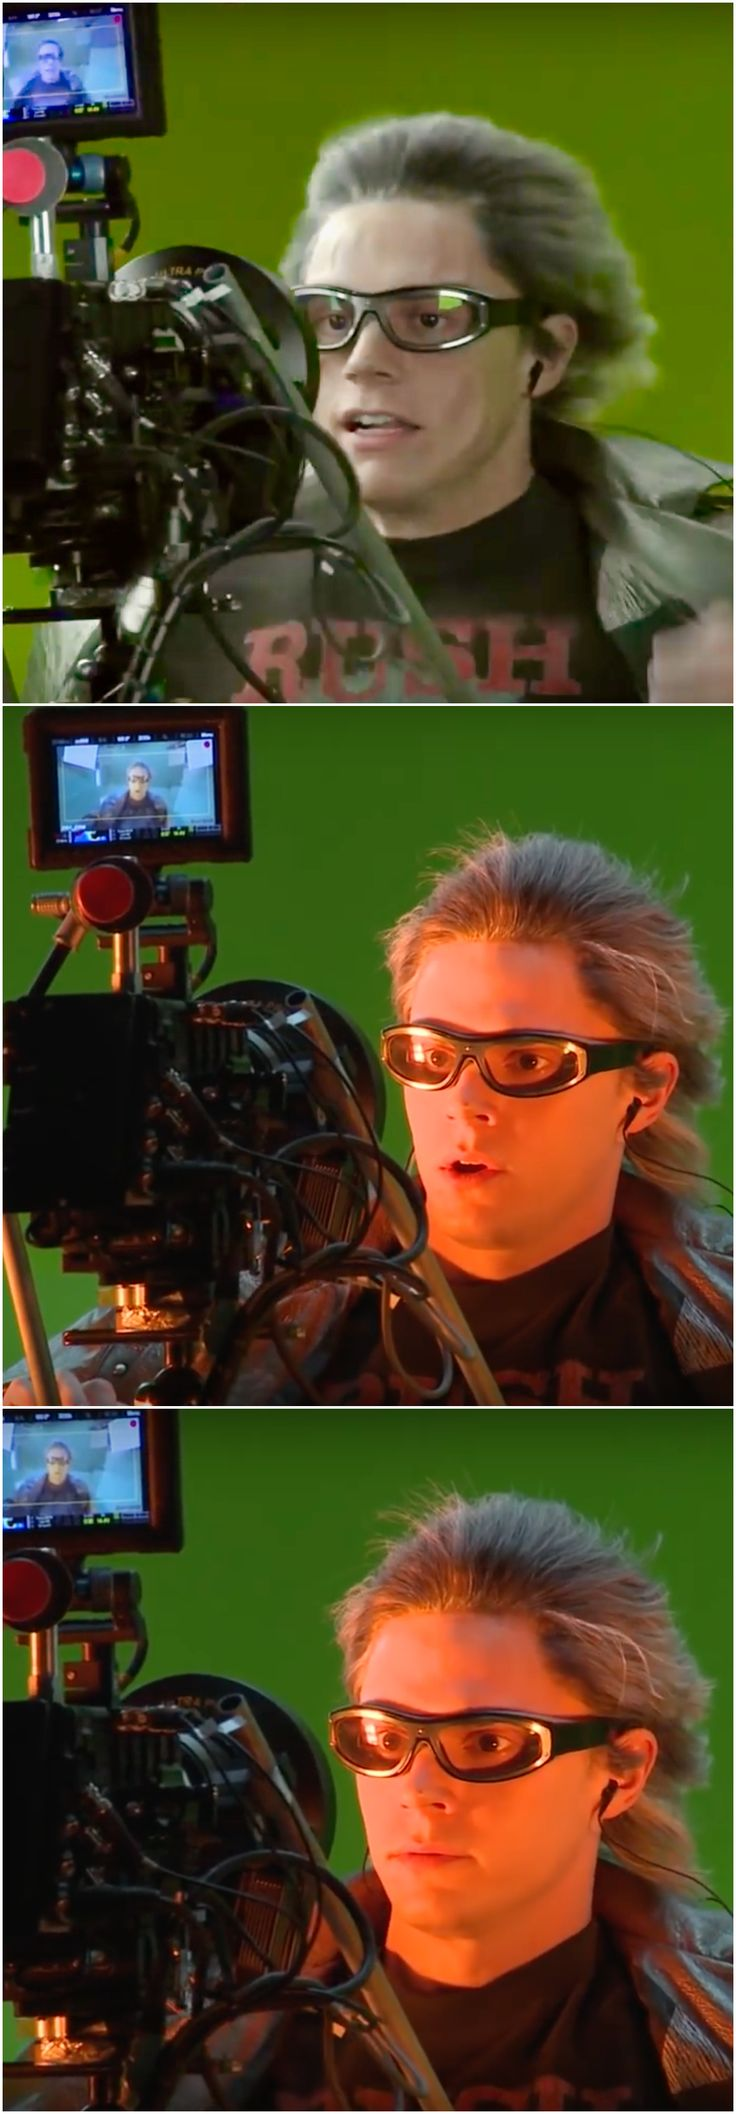 Behind The Scenes. Evan Peters while filming Quicksilver's now iconic Time In A Bottle Sequence in X-Men Apocalypse. Evan's running on a treadmill infront of the Green Screen, with a high velocity fan blowing on his face. Movie Magic!